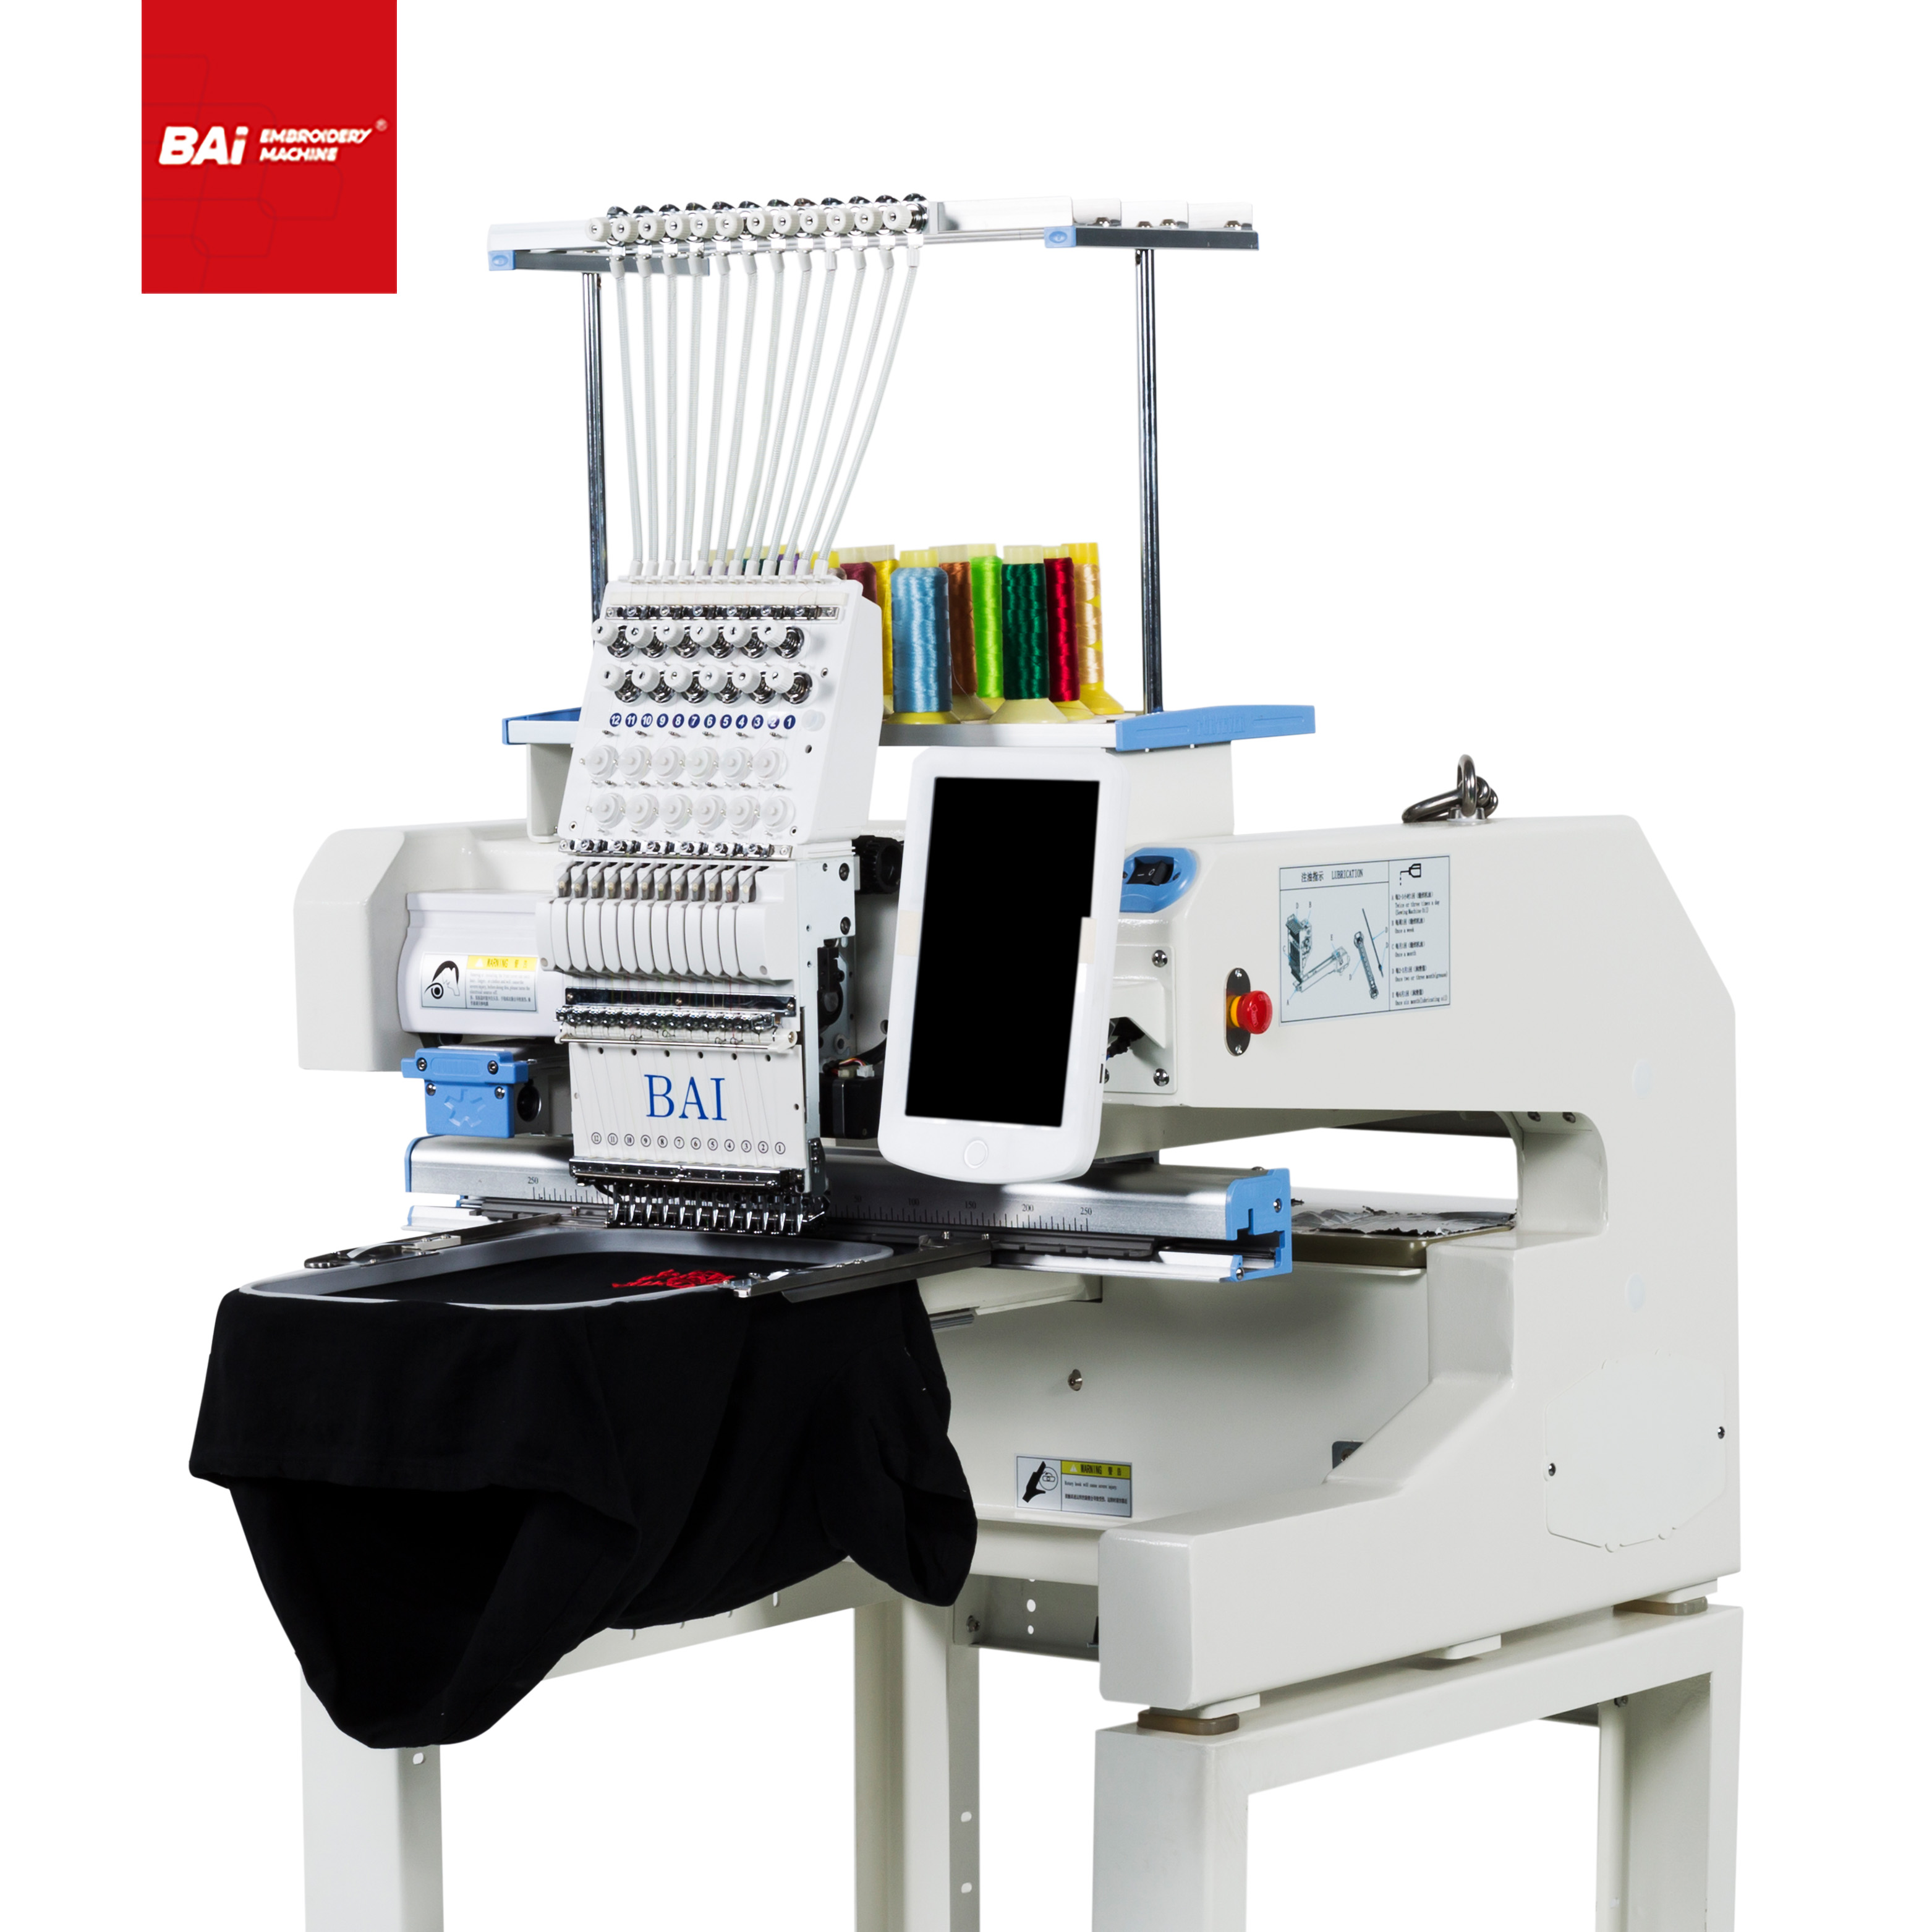 BAI Household Flat Embroidery Machines with Garment for Sale